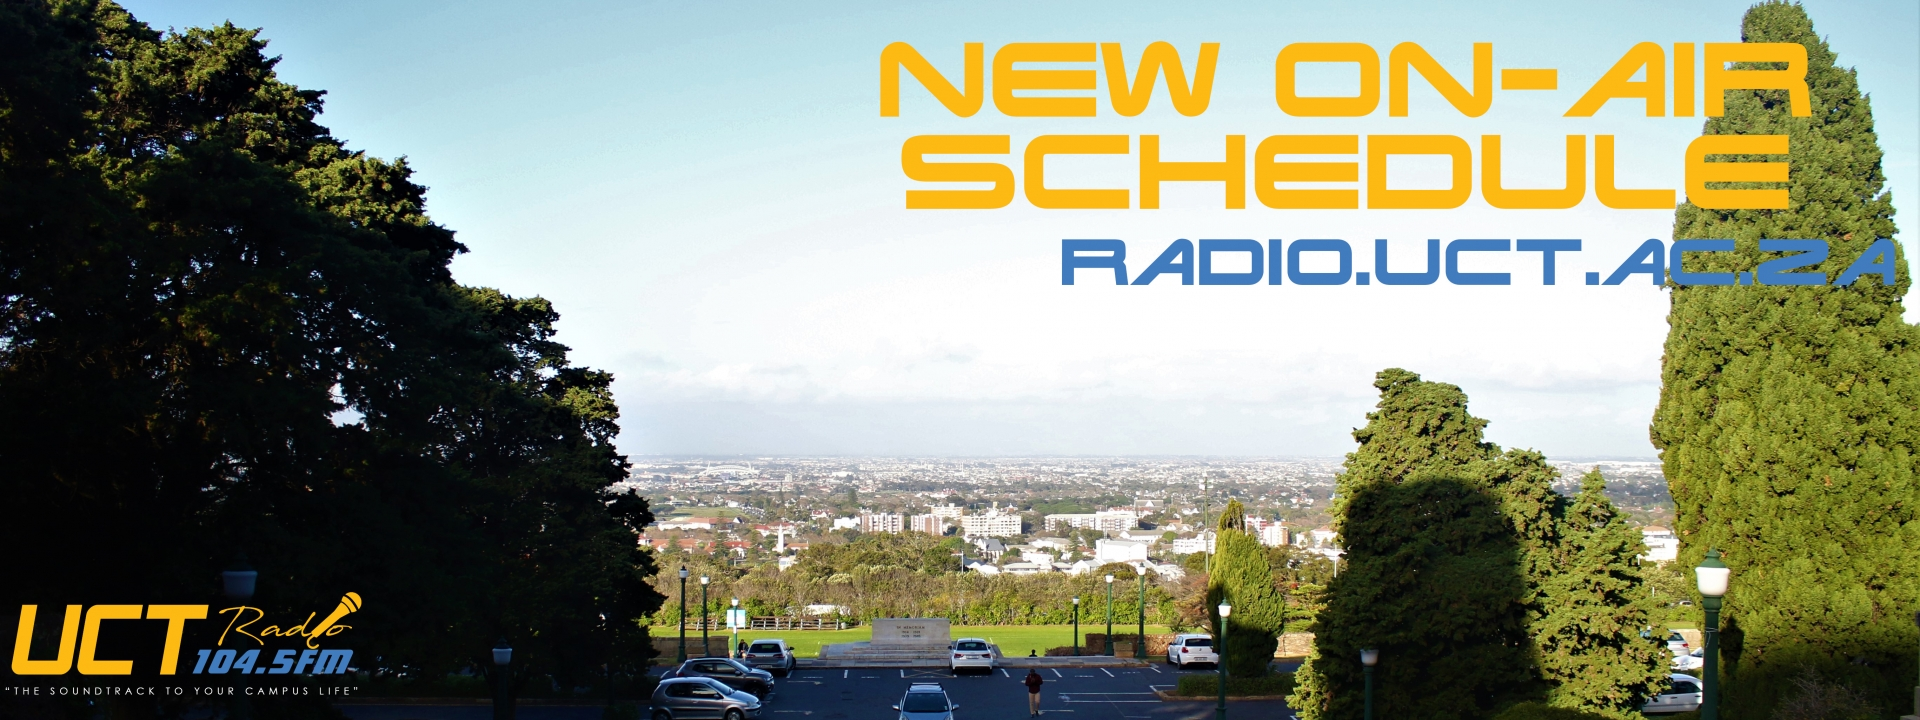 New On-Air Schedule